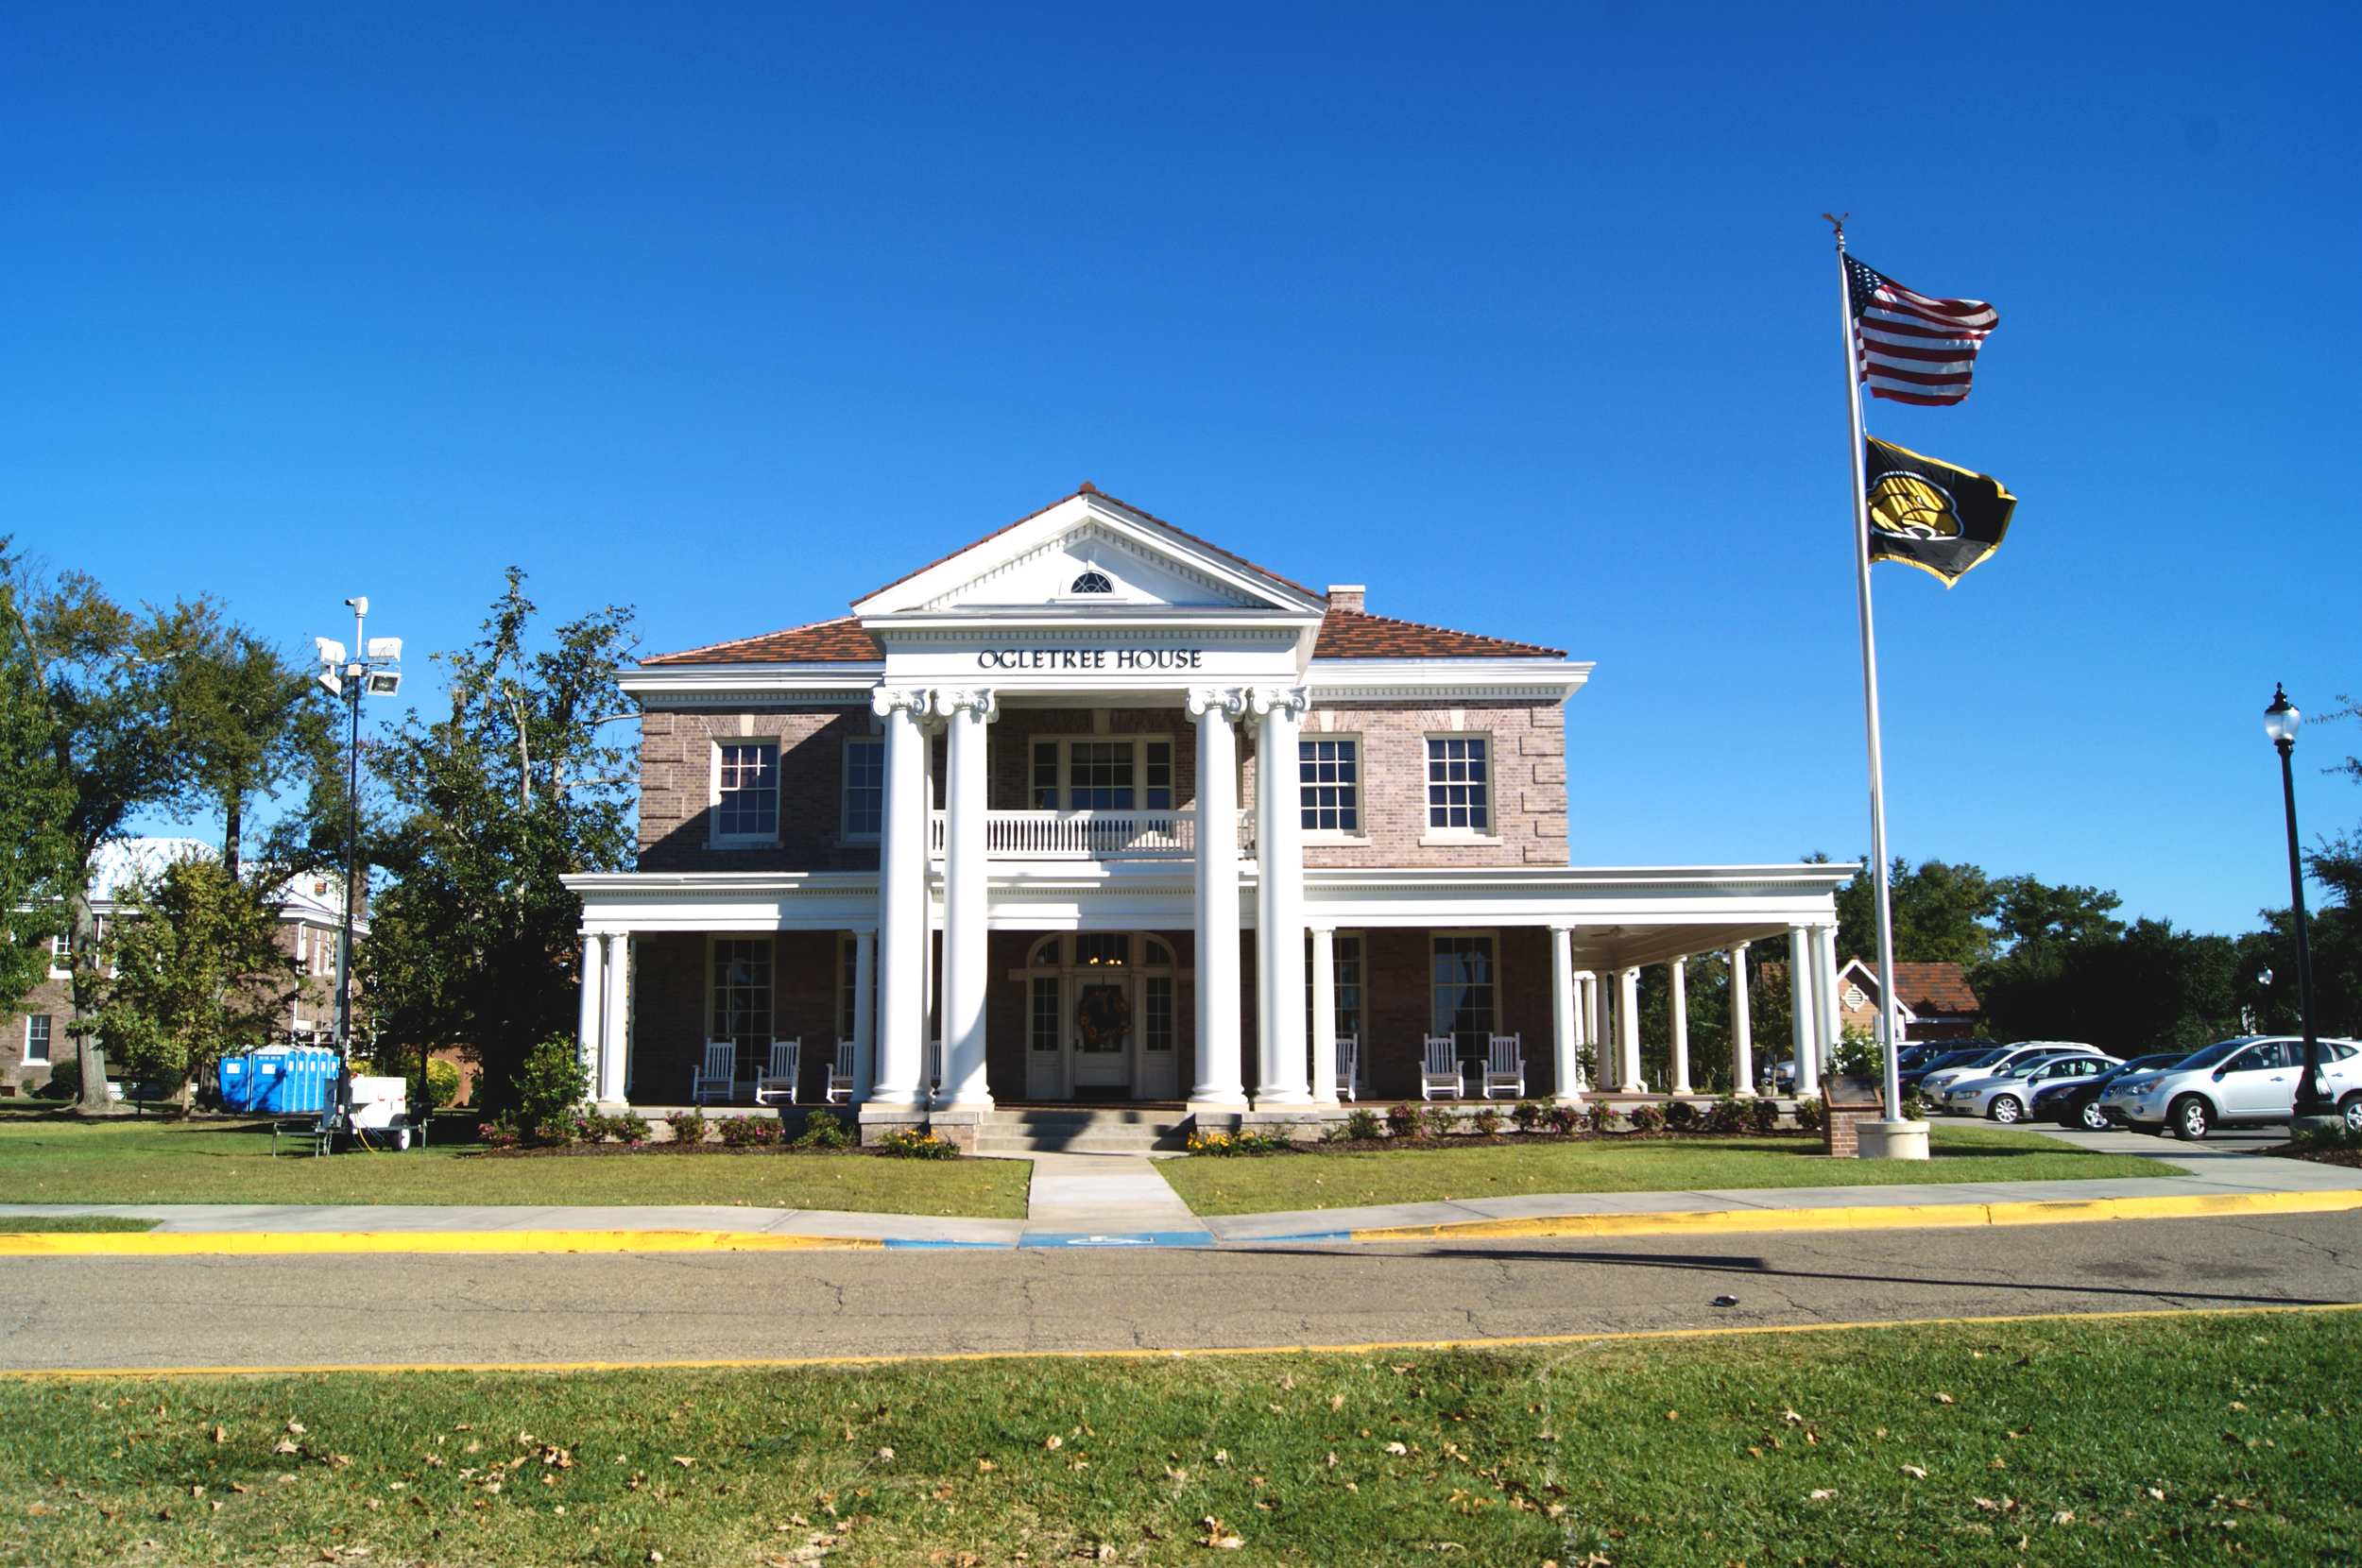 The restored Ogletree Alumni House at the University of Southern Mississippi. October 30, 2014, Hattiesburg, Miss.Photo by Karelia Schmitz.